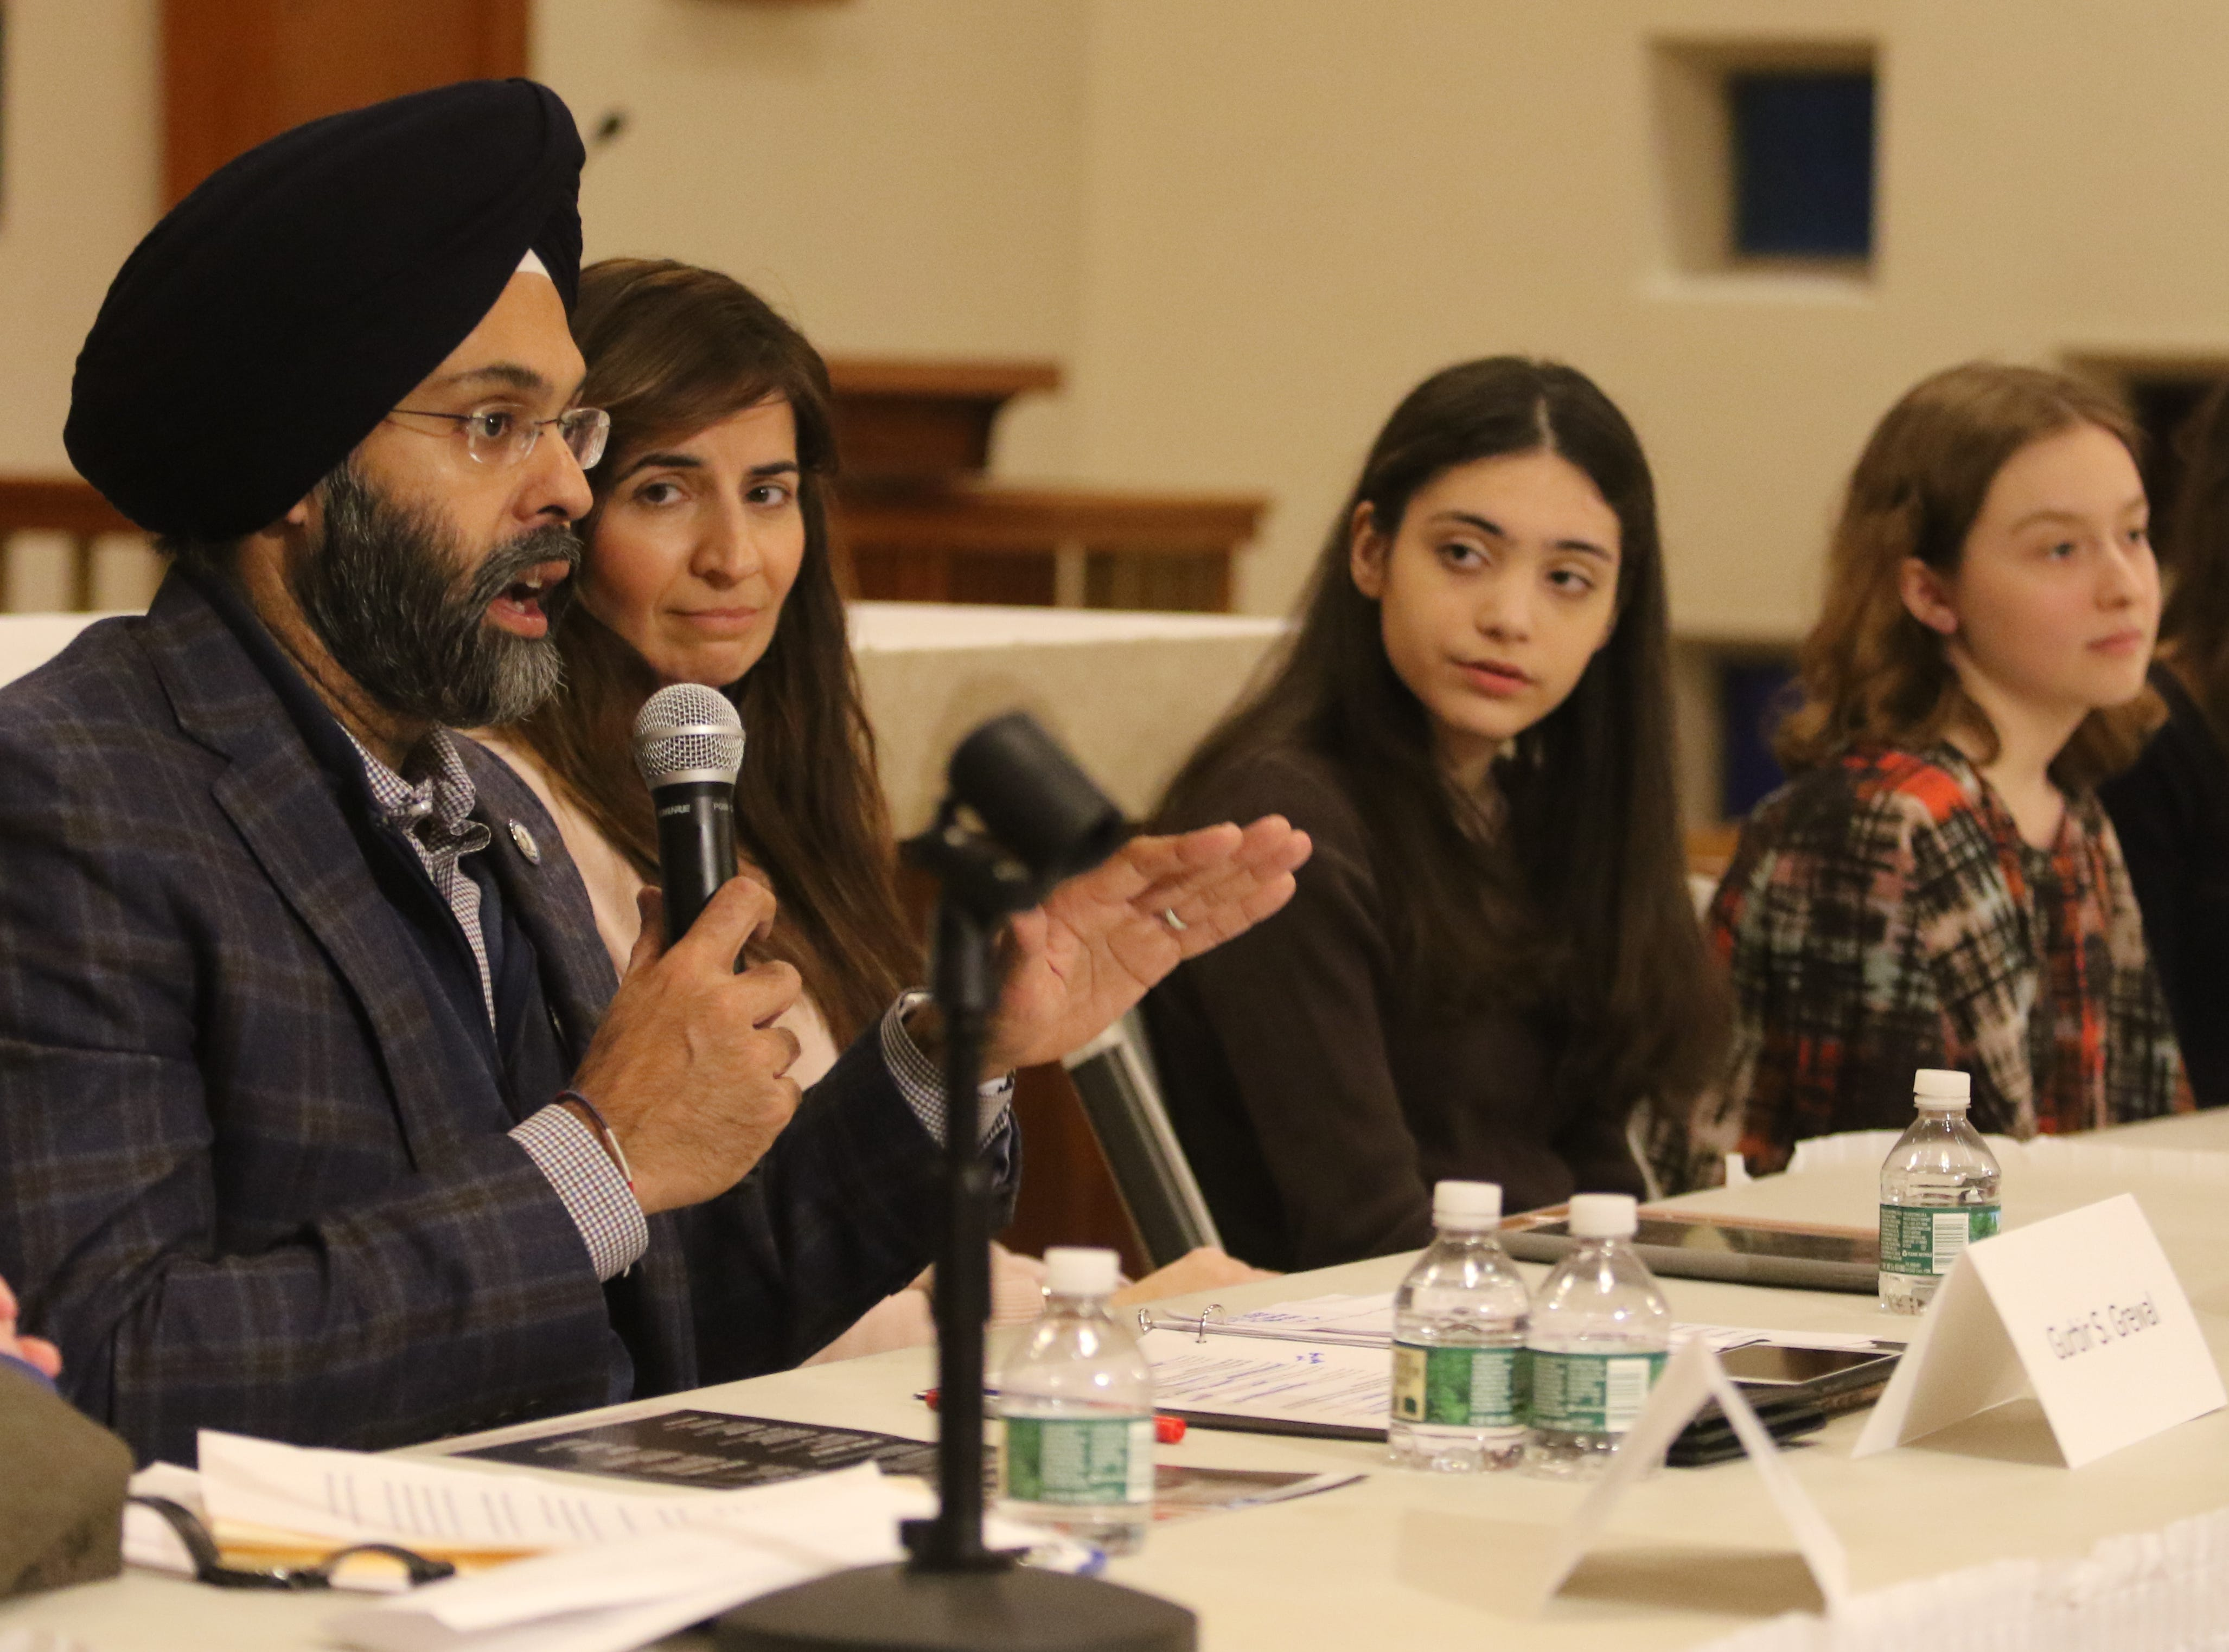 NJ Attorney General, Gurbir Grewal is part of a Social Justice Forum presented by the Dr. Martin Luther King Jr. Celebration Committee of Ridgewood and Glenn Rock at the All Saints Episcopal Church in Glenn Rock on January 19, 2019. One the panel along with Grewal is Helen Archontou, CEO of the YWCA of Bergen County, Alana Benson student at Ridgewood HS, Madeleine Brennan a Glenn Rock HS student, Samara Rosen and Sophia Swanson both Glen Rock HS students.